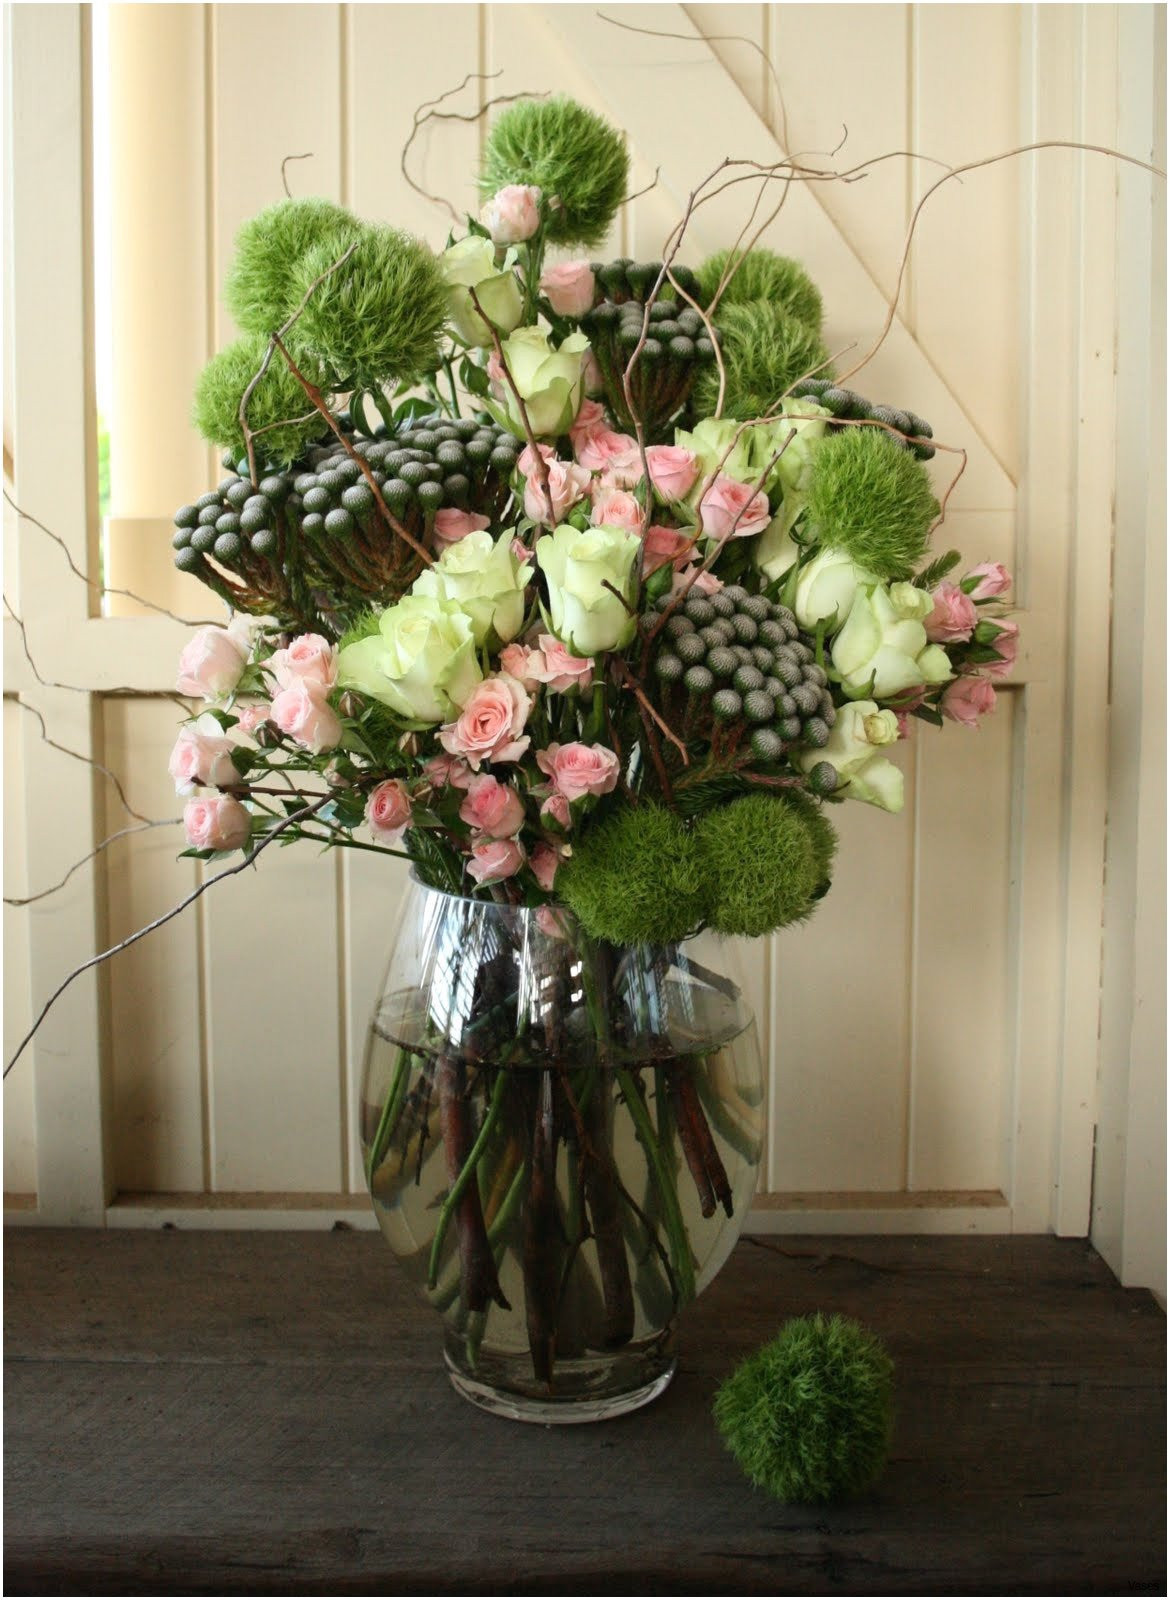 flowers in vases artificial ones of flowers in a bowl photograph silk flower bouquets imposing h vases inside flowers in a bowl photograph silk flower bouquets imposing h vases vase flower a